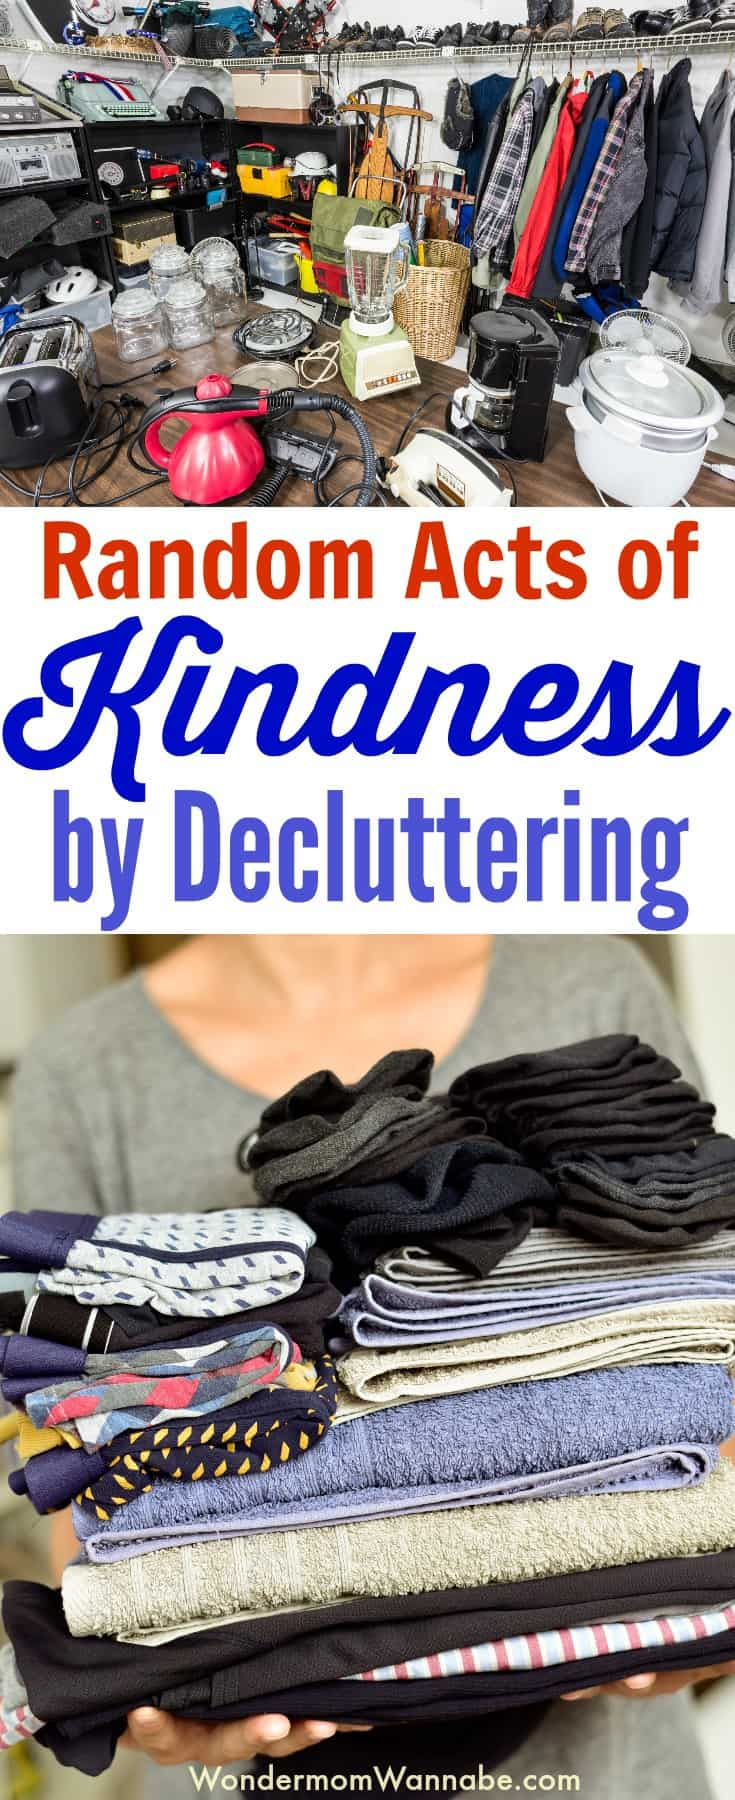 a collage of lots of household items and a person holding a stack of clothes and towels with title text reading Random Acts of Kindness by Decluttering